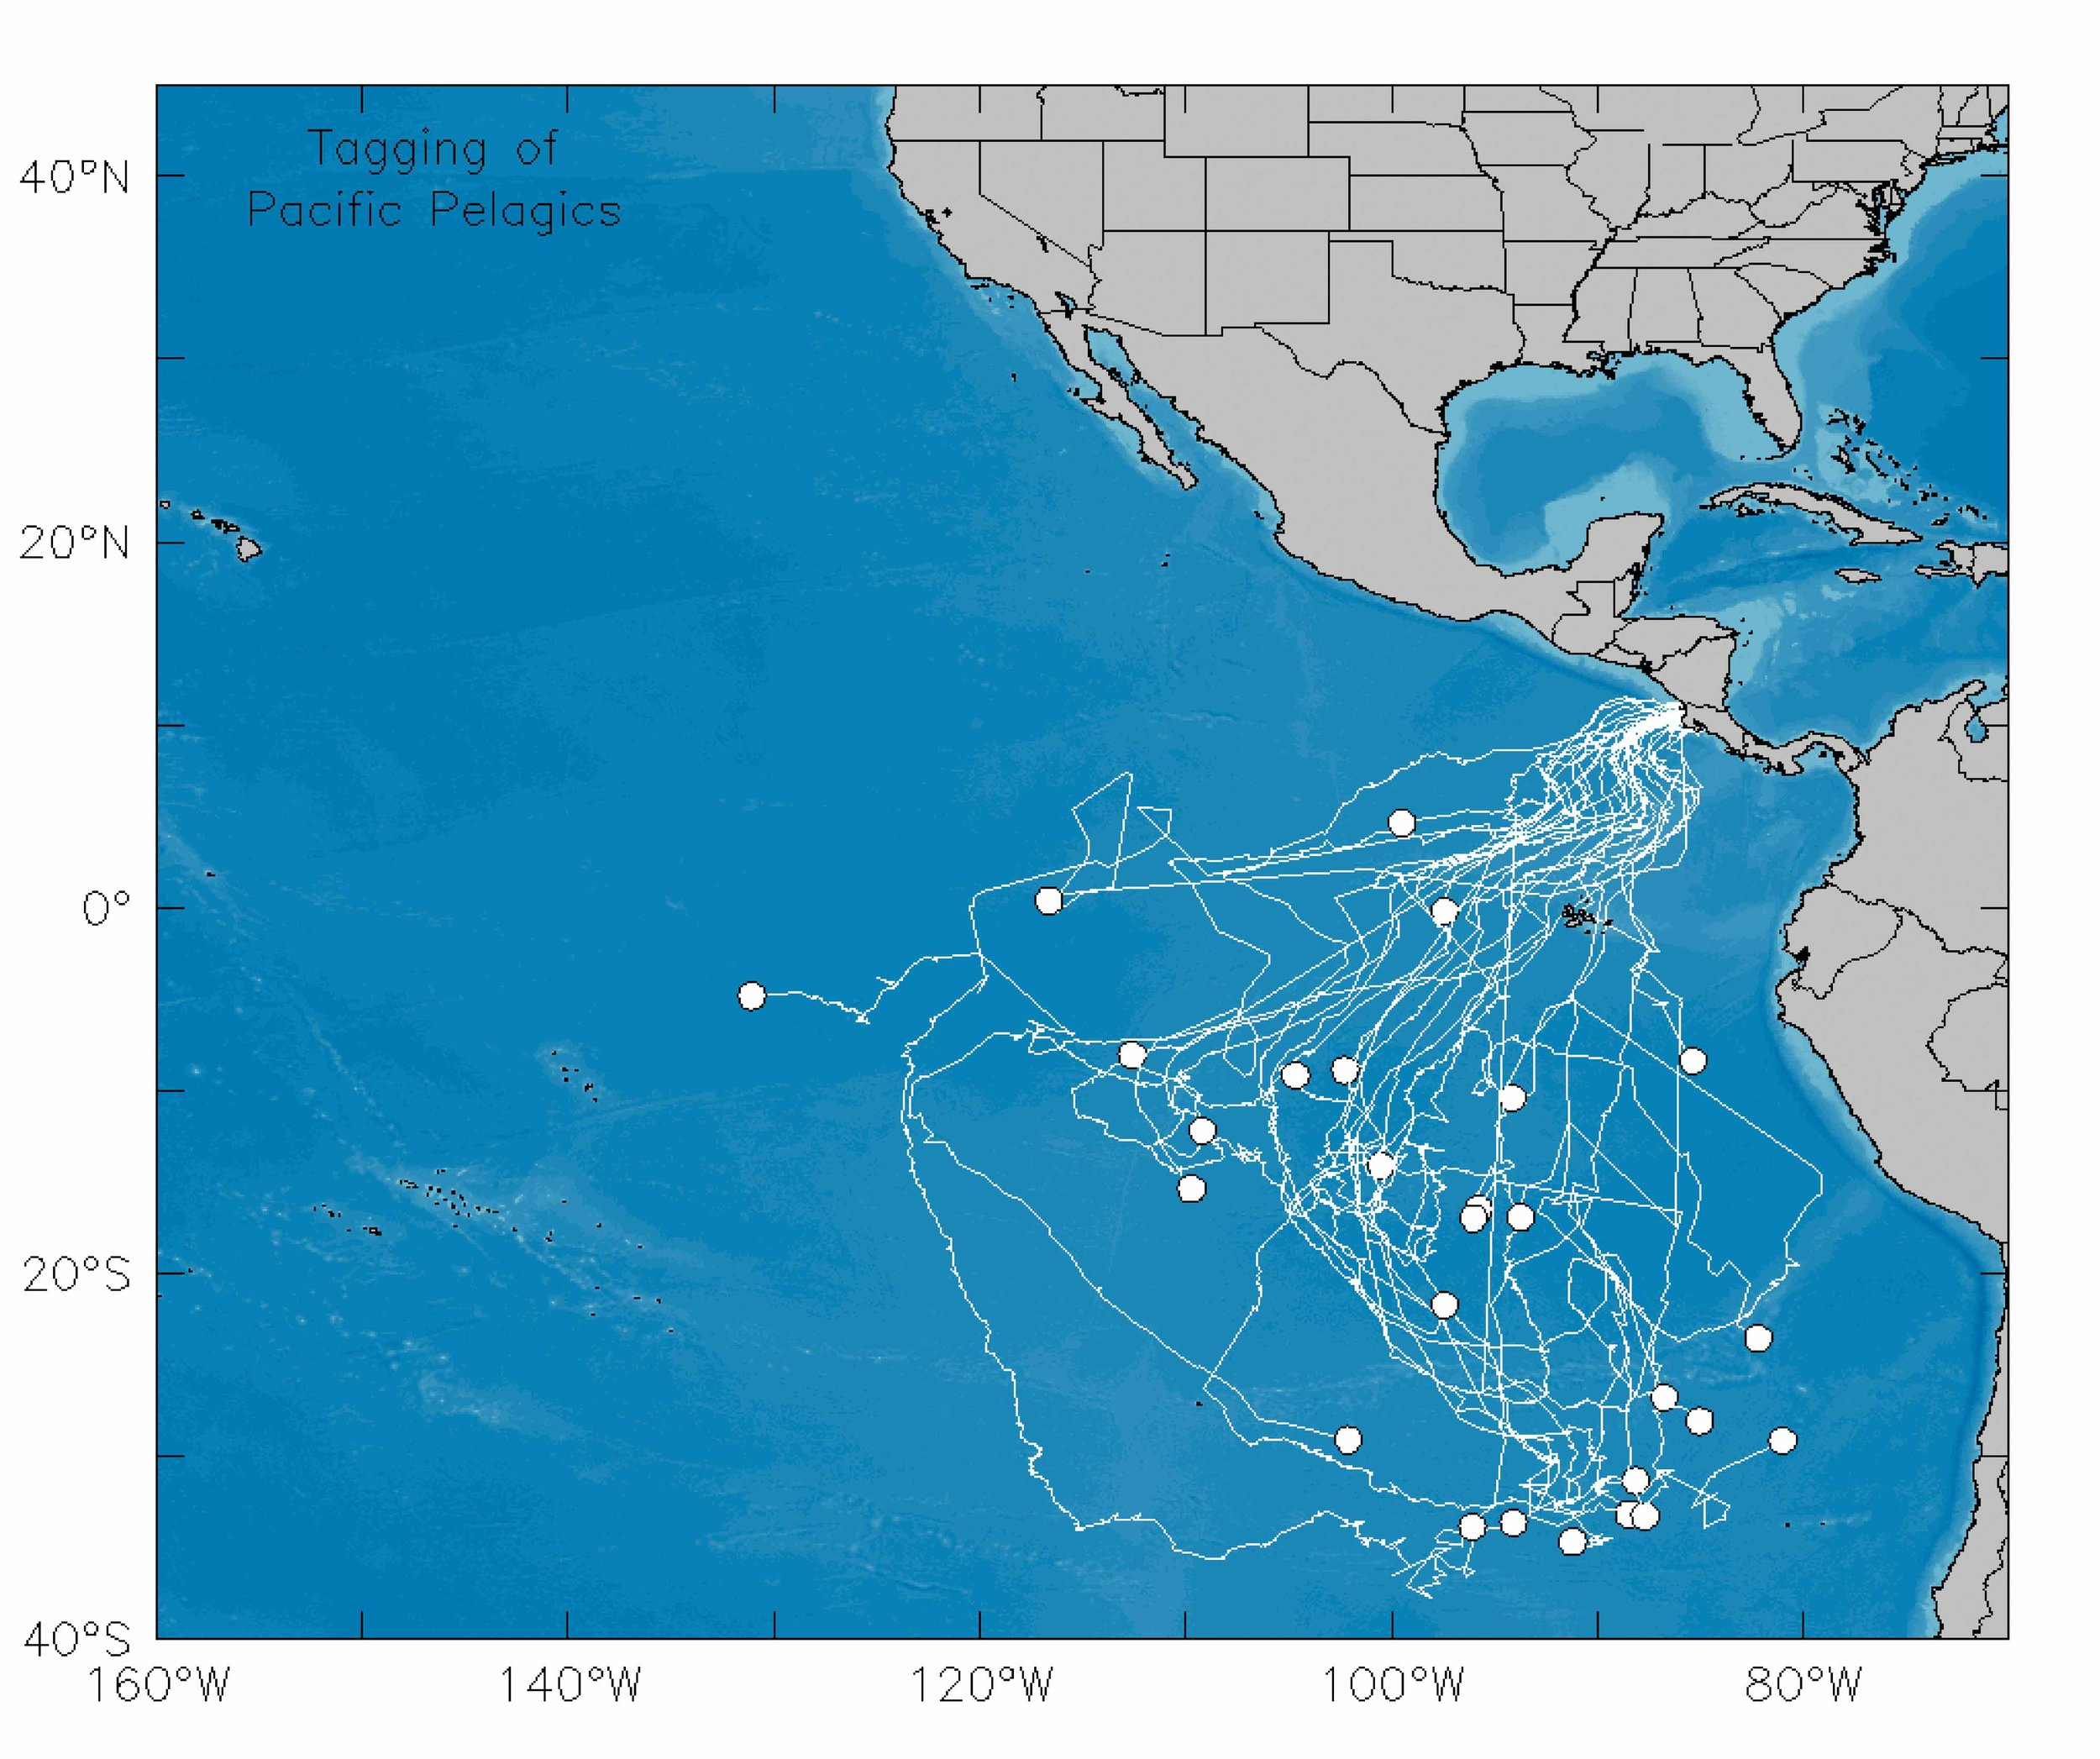 By use of satellite transmitters, researchers have tracked 50 leatherbacks' movements around the Pacific Ocean. © TAGGING OF PACIFIC PELAGICS (TOPP)